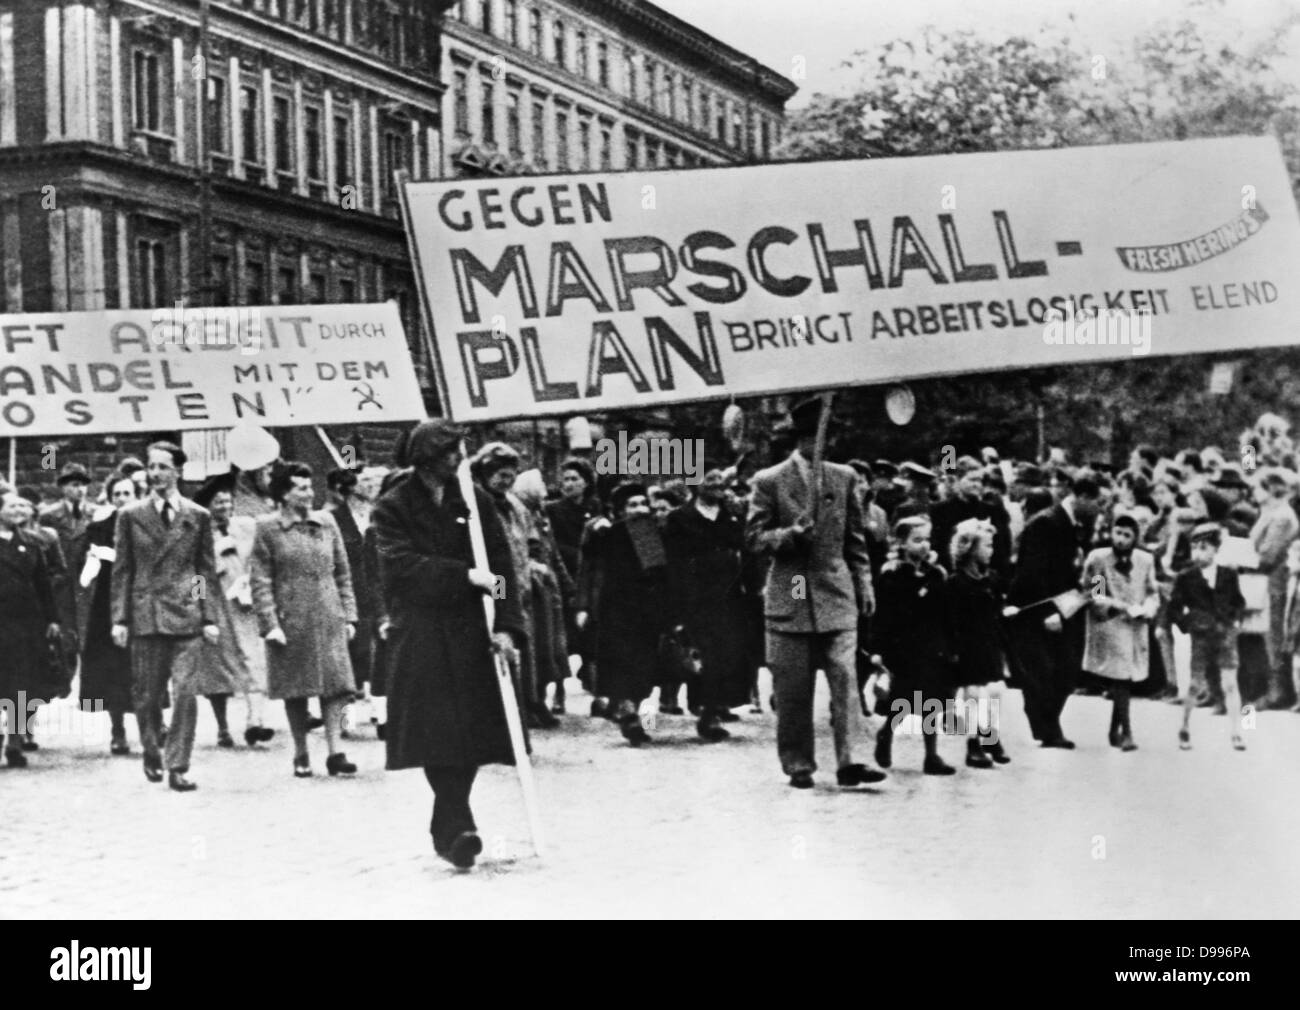 Marshall plan demonstration in Germany 1948 - Stock Image